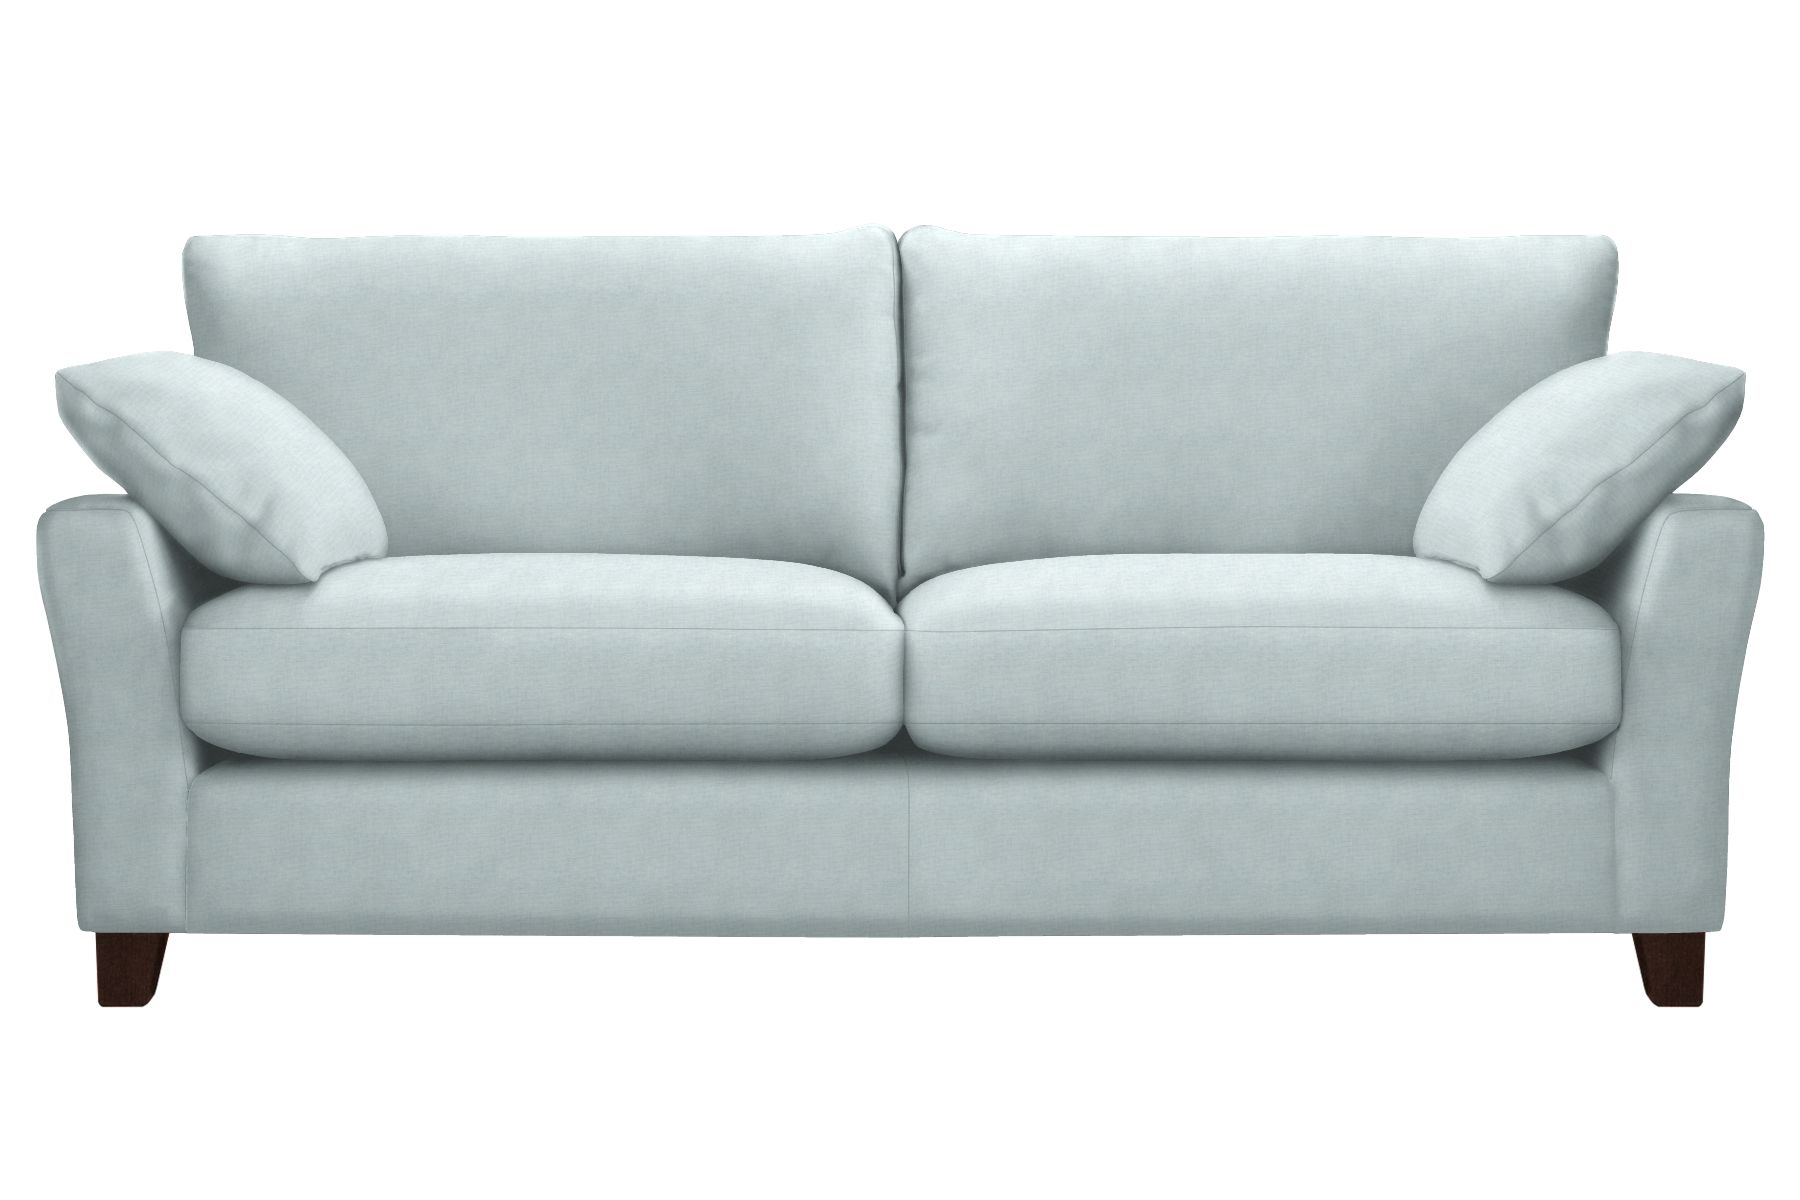 Superb Next Alexis Sofa In Amalfi Blue Home Decor Buy Sofa Uwap Interior Chair Design Uwaporg